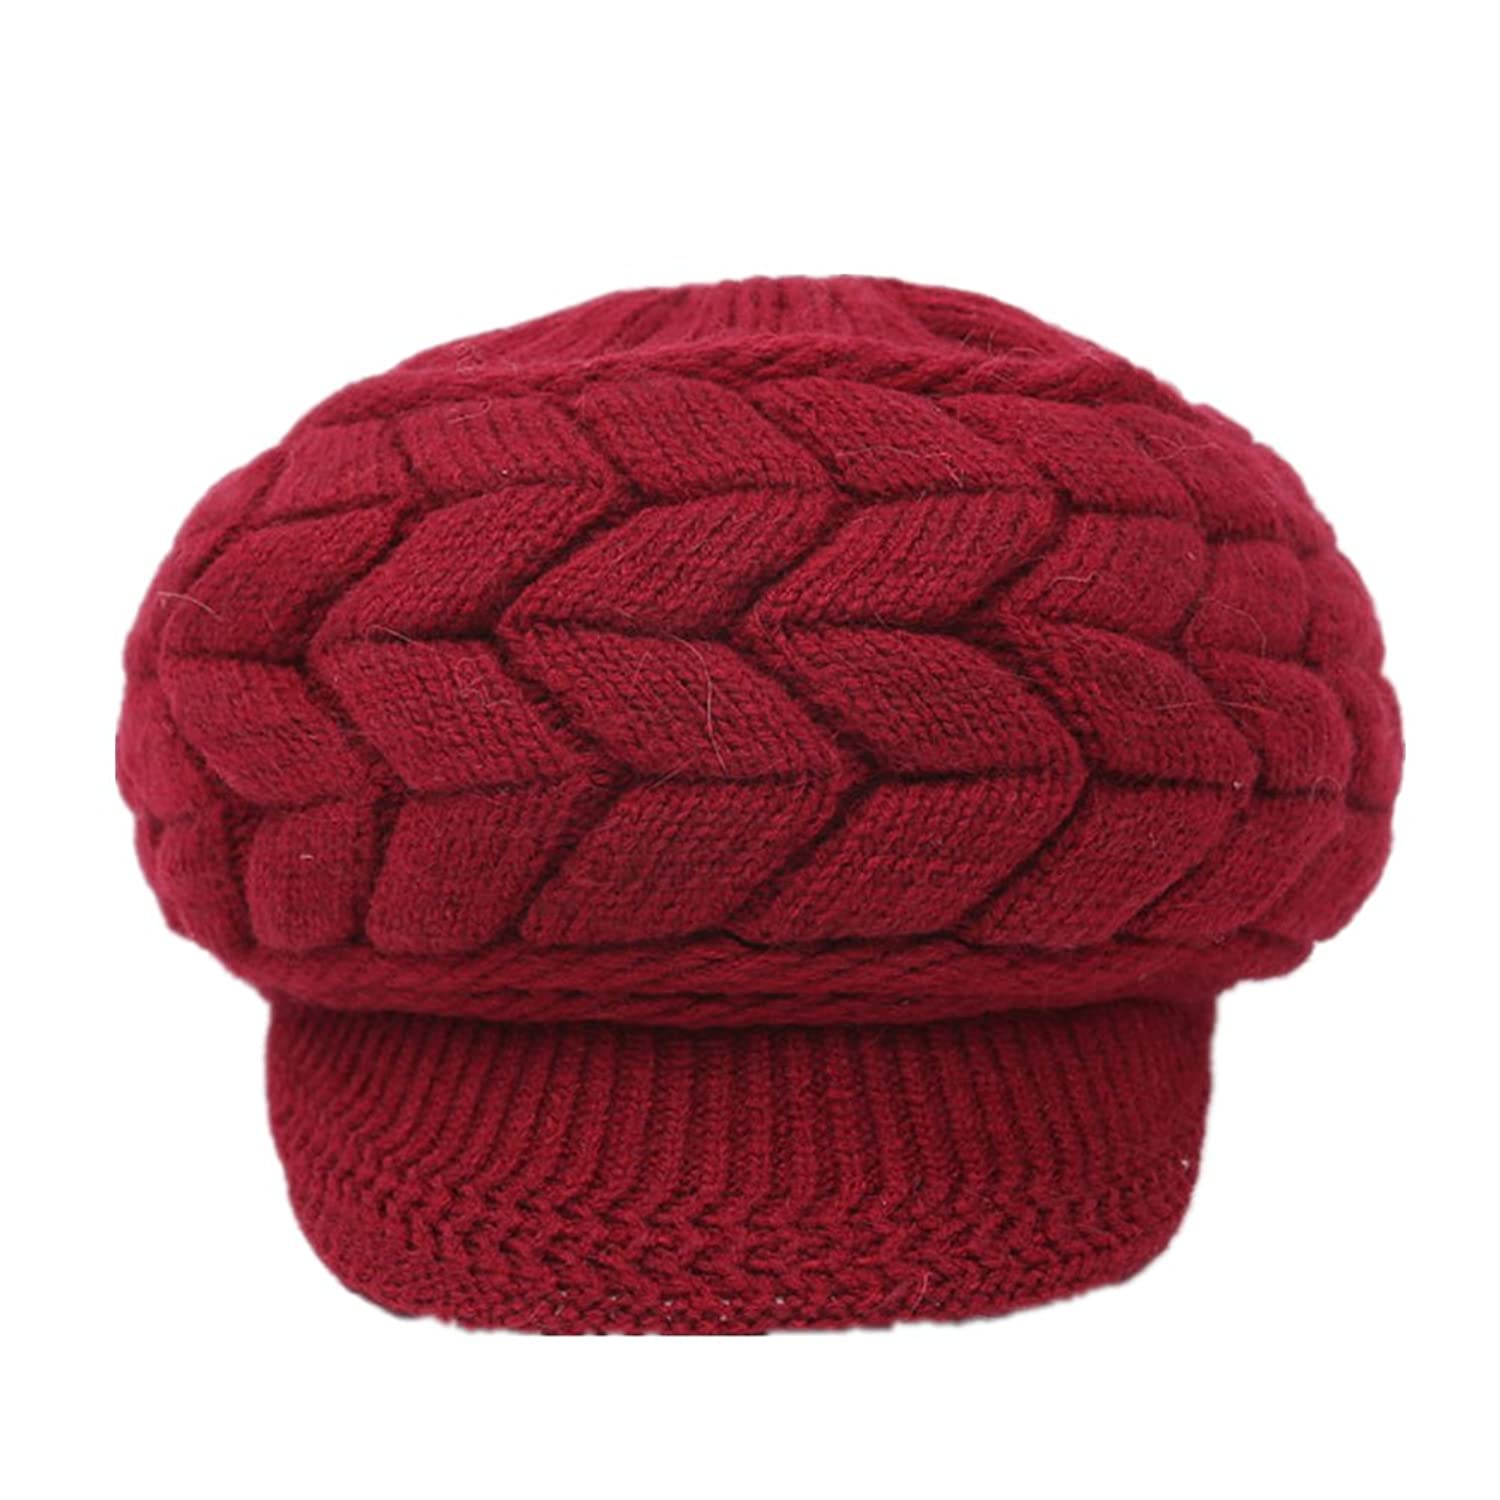 Home Prefer Women's Winter Hats with Visor Warm Thick Cable Knitted Visor Beanie